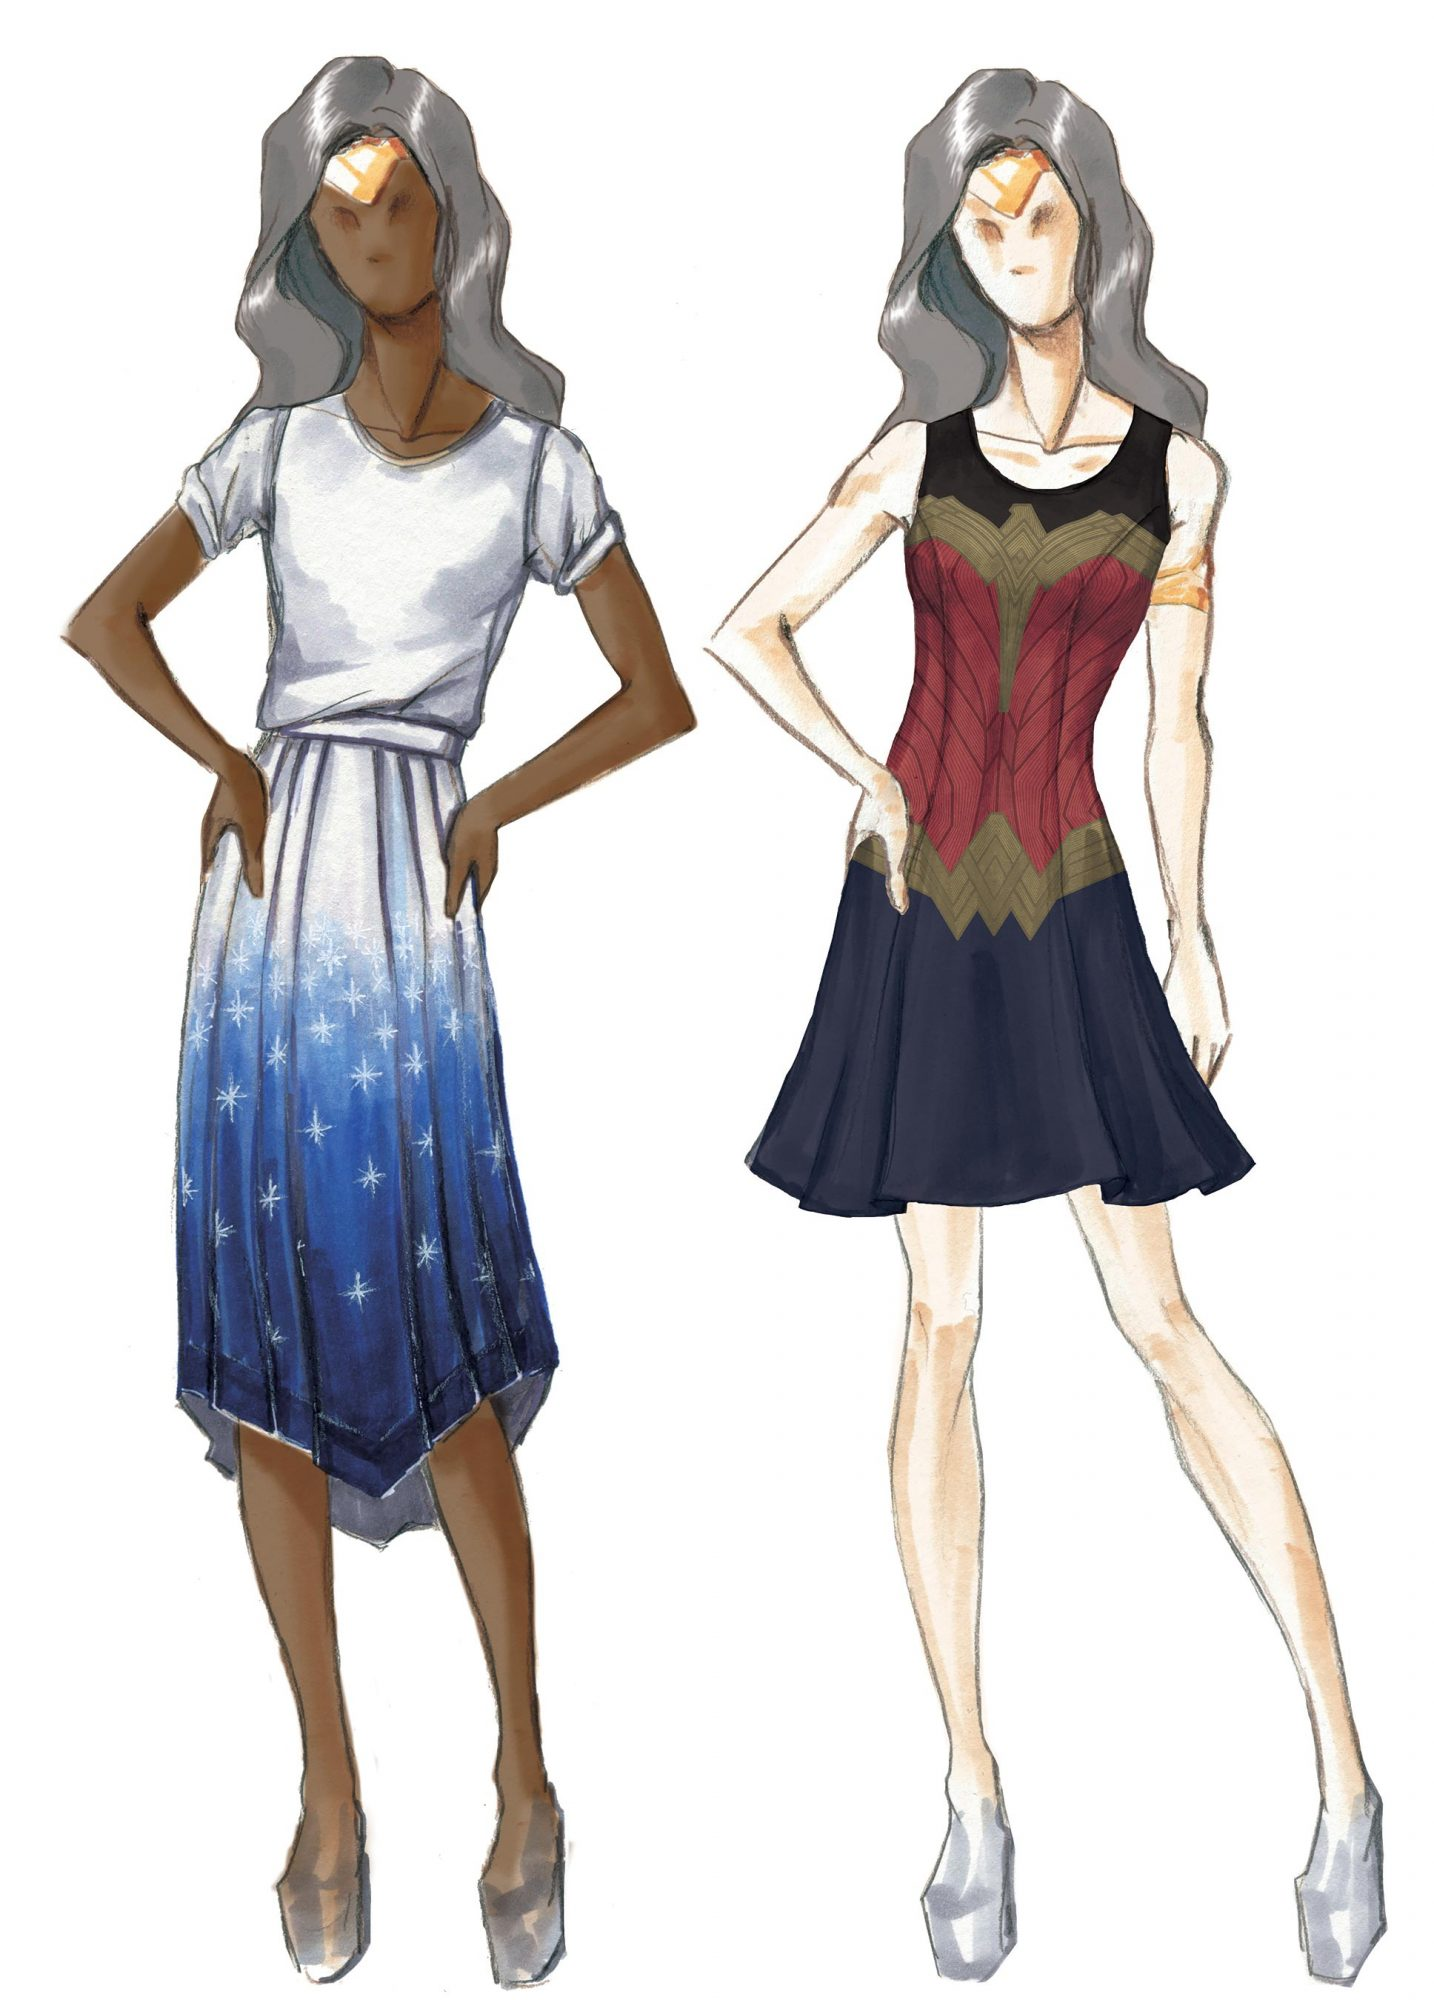 Wonder Woman concept illustrations from Hot Topic